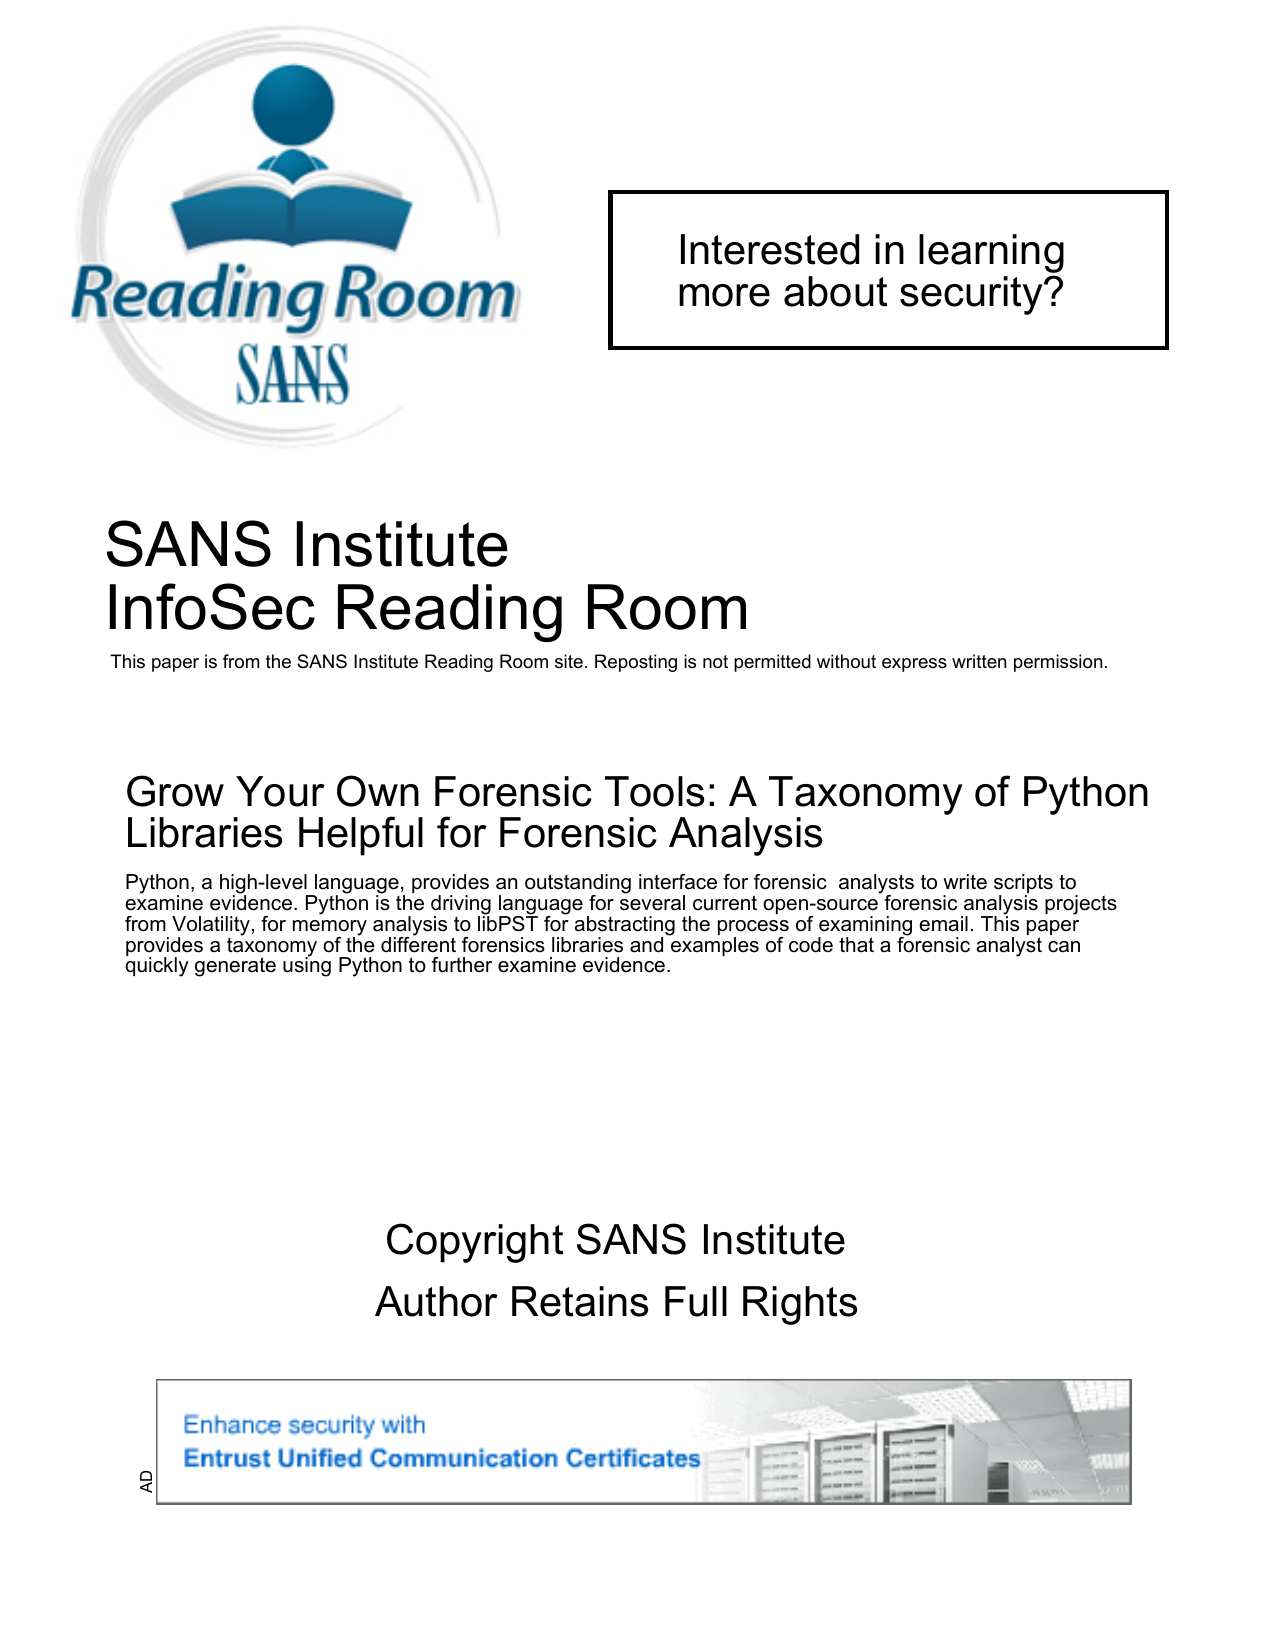 SANS Institute InfoSec Reading Room Interested in learning more